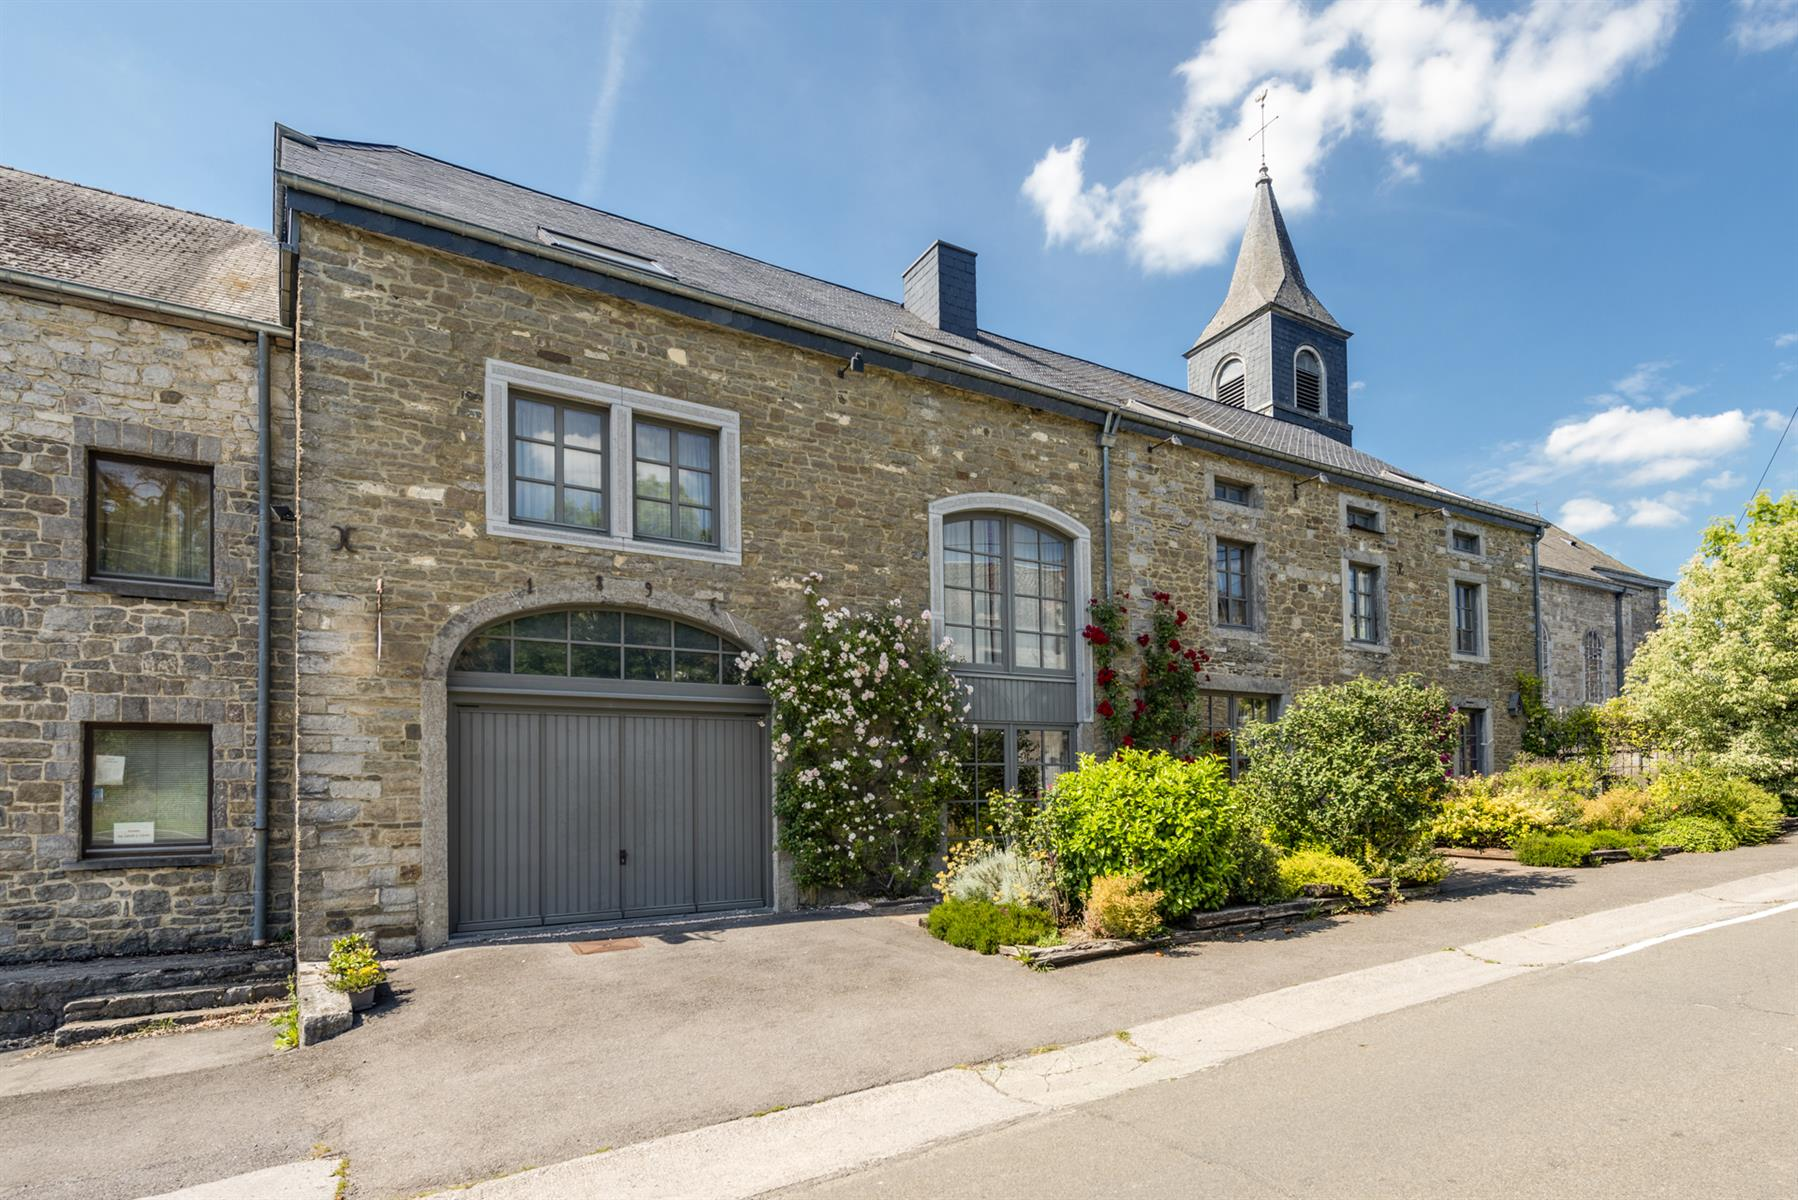 Maison - Wellin Chanly - #3886203-2